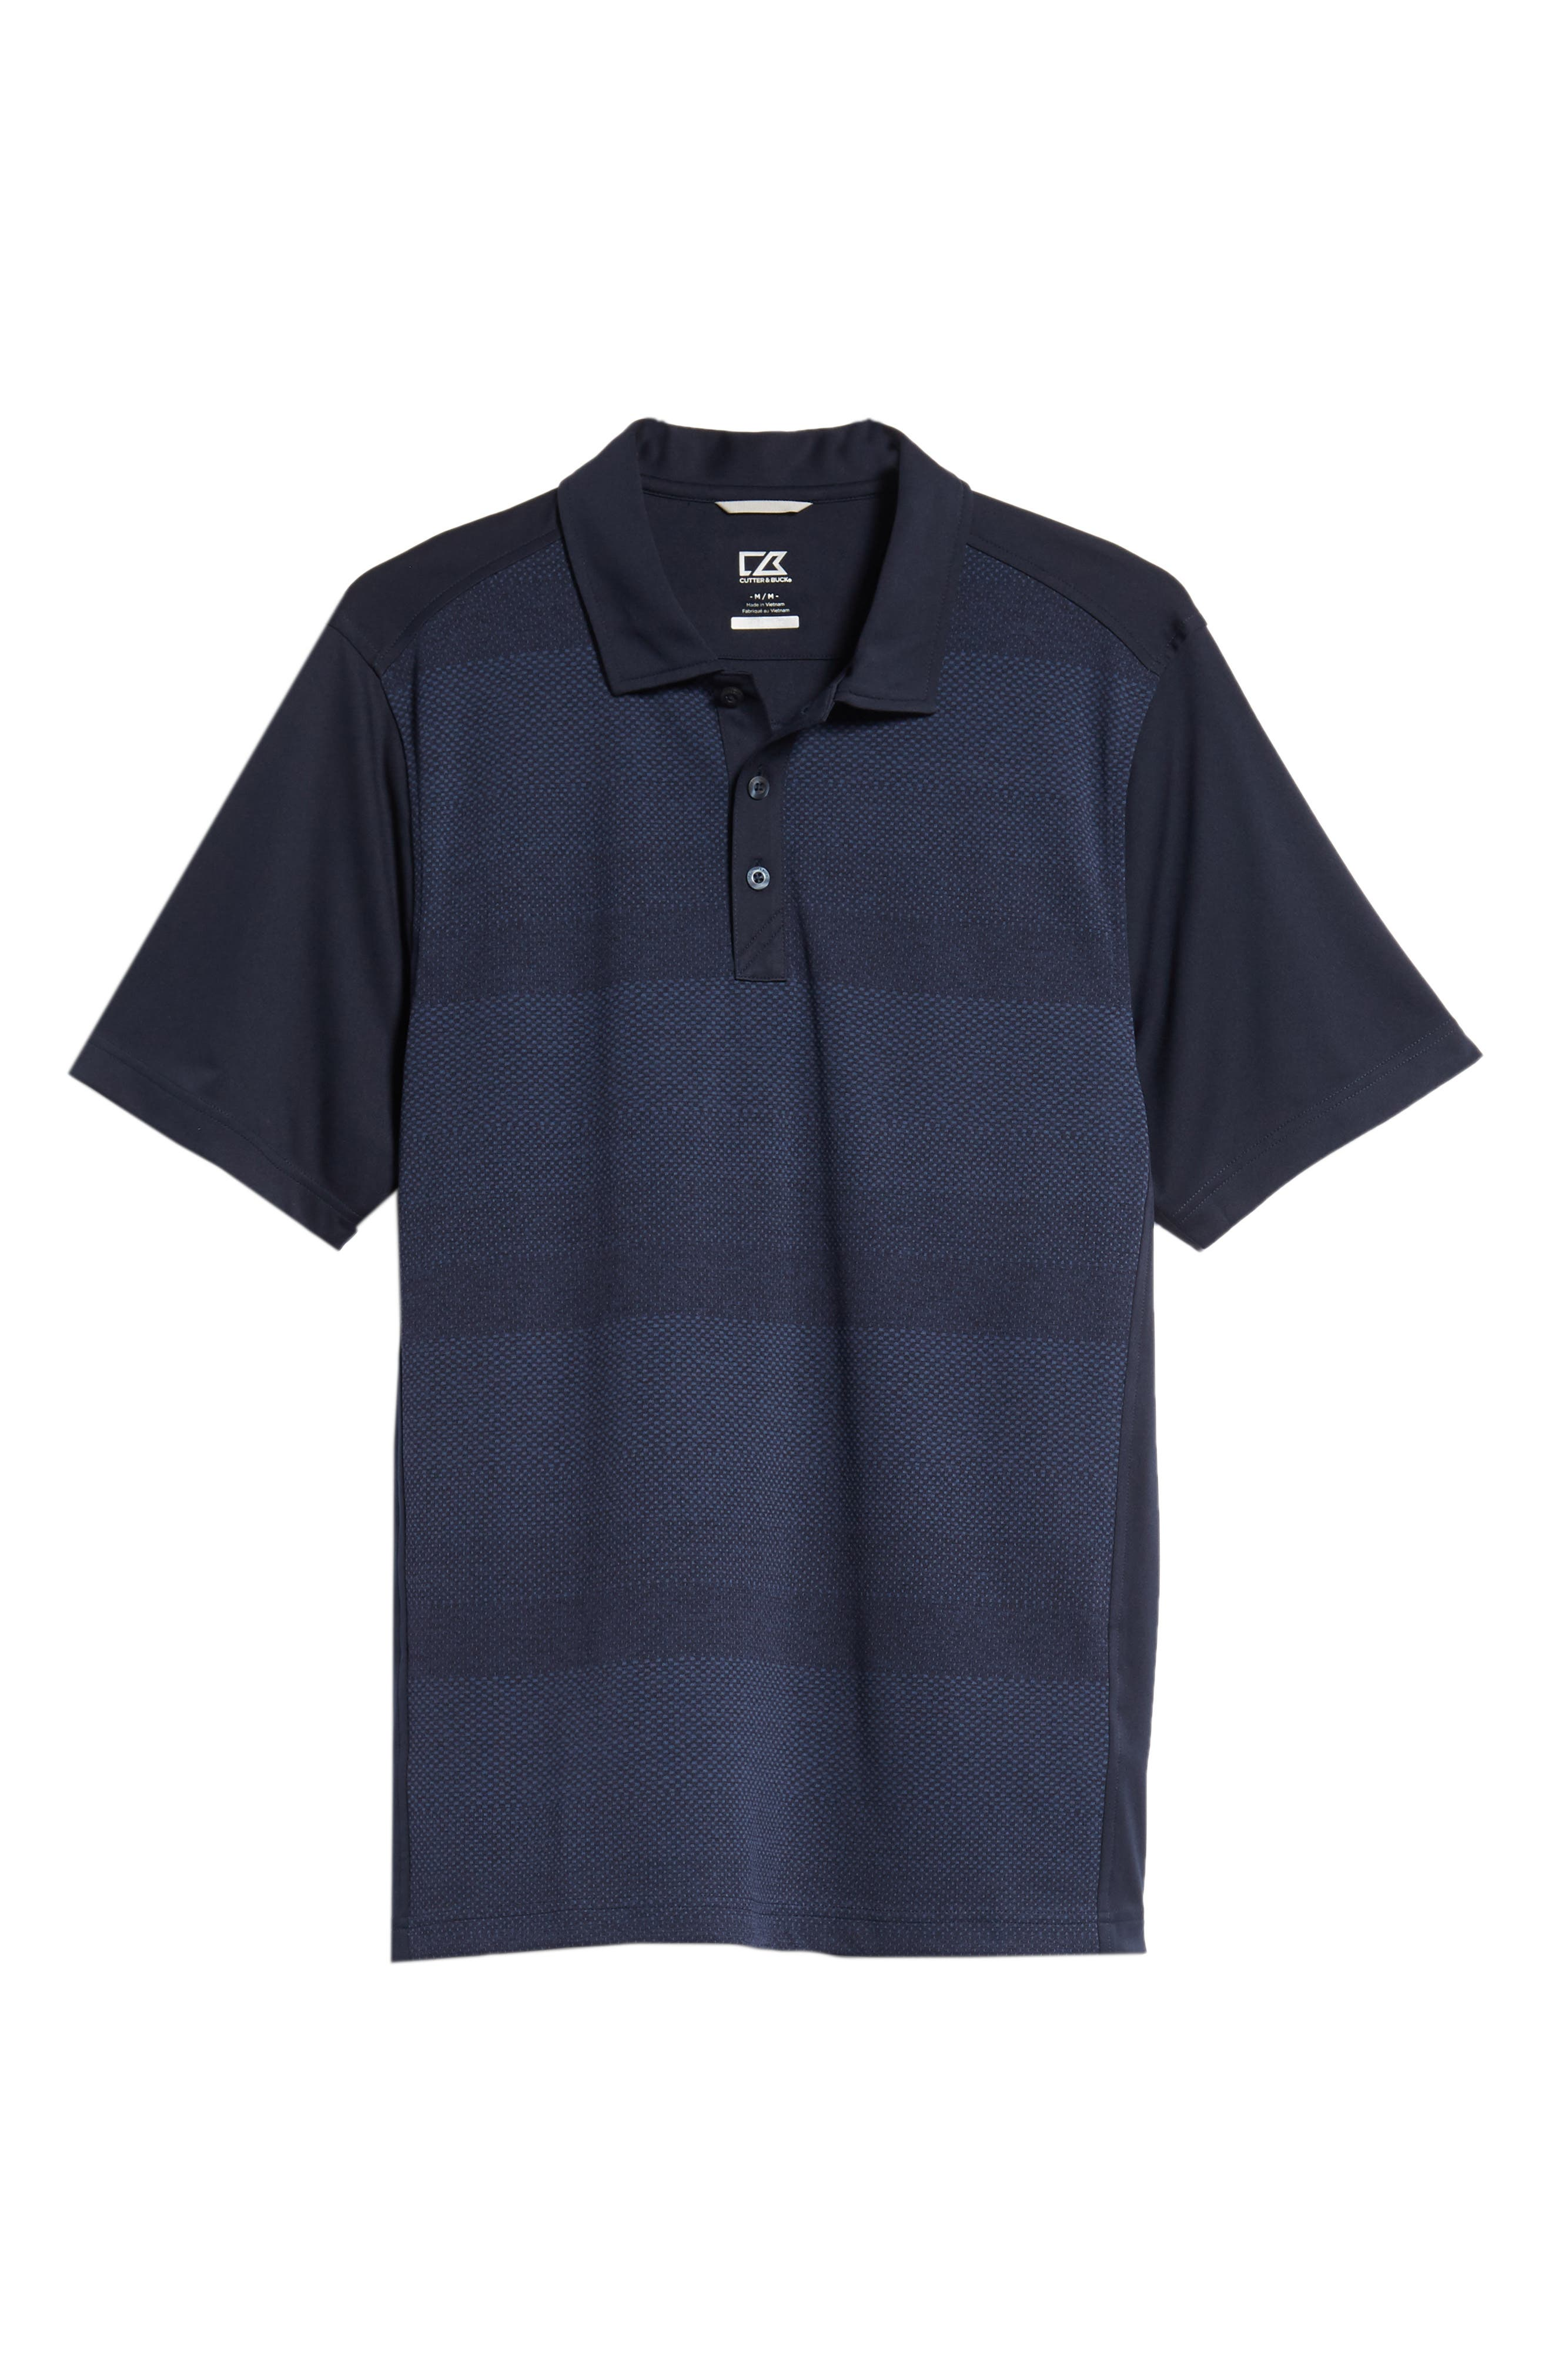 Crescent DryTec Microprint Polo,                             Alternate thumbnail 6, color,                             LIBERTY NAVY